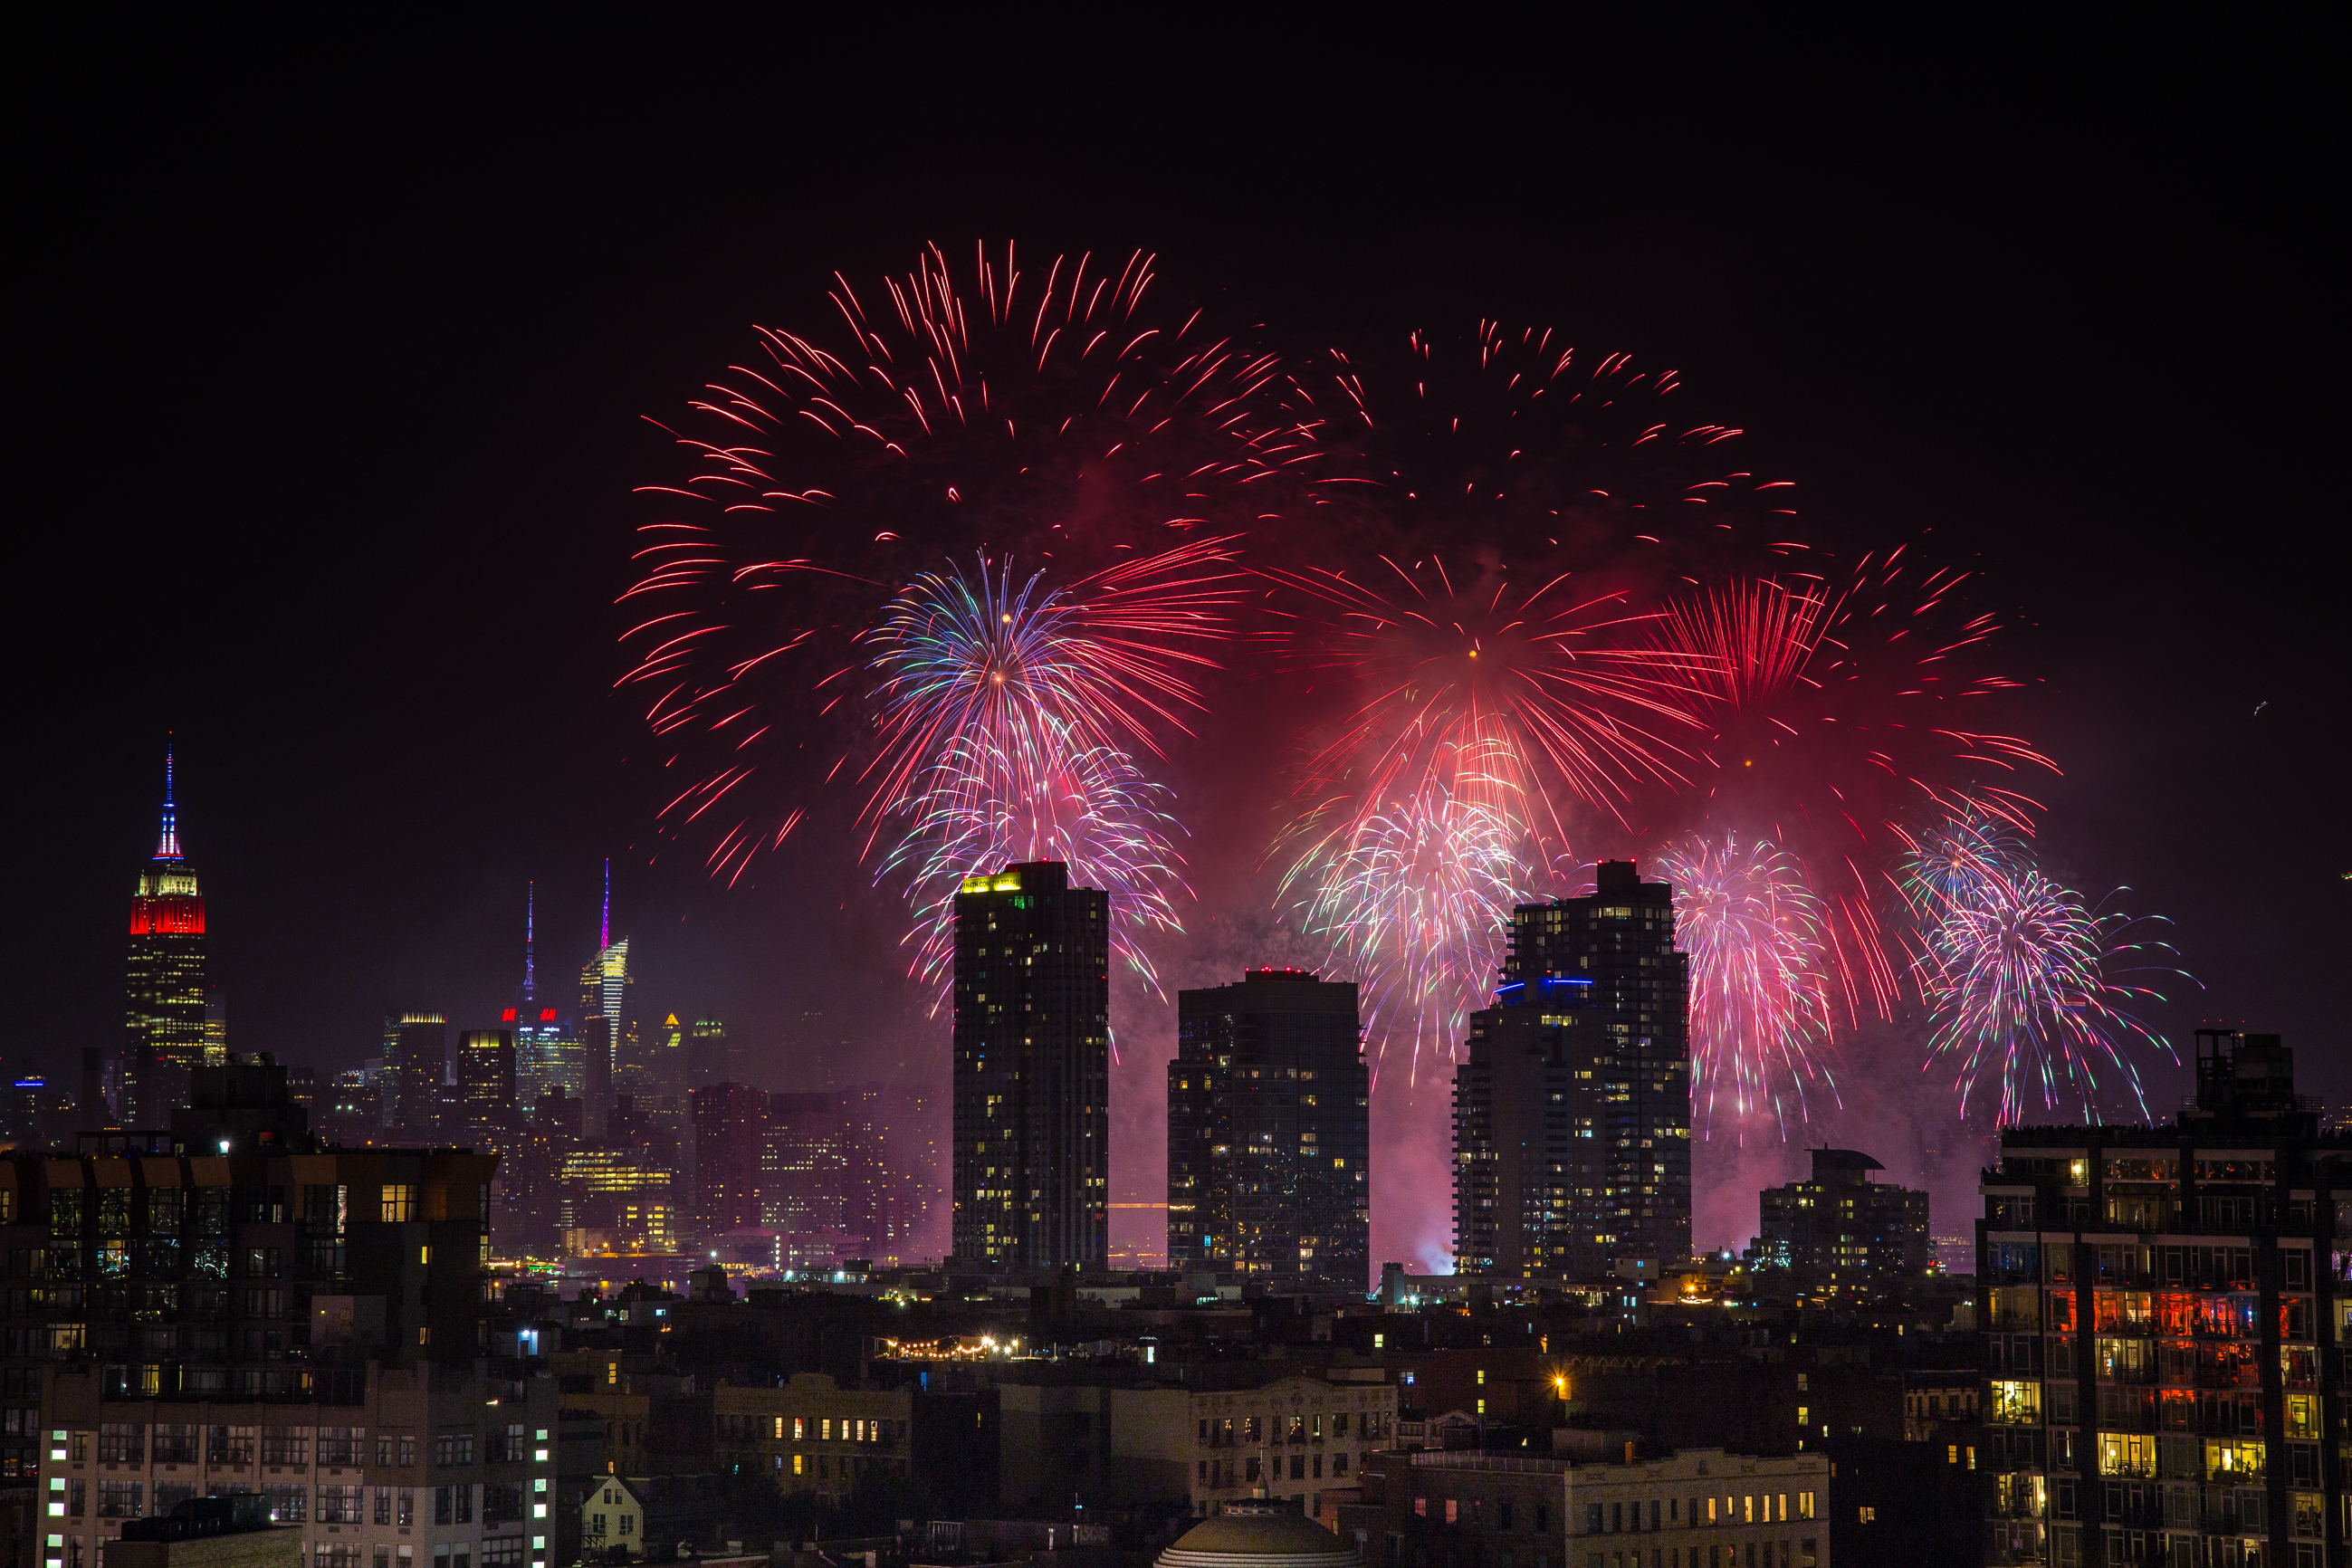 Here's where the Macy's Fireworks are actually happening this year